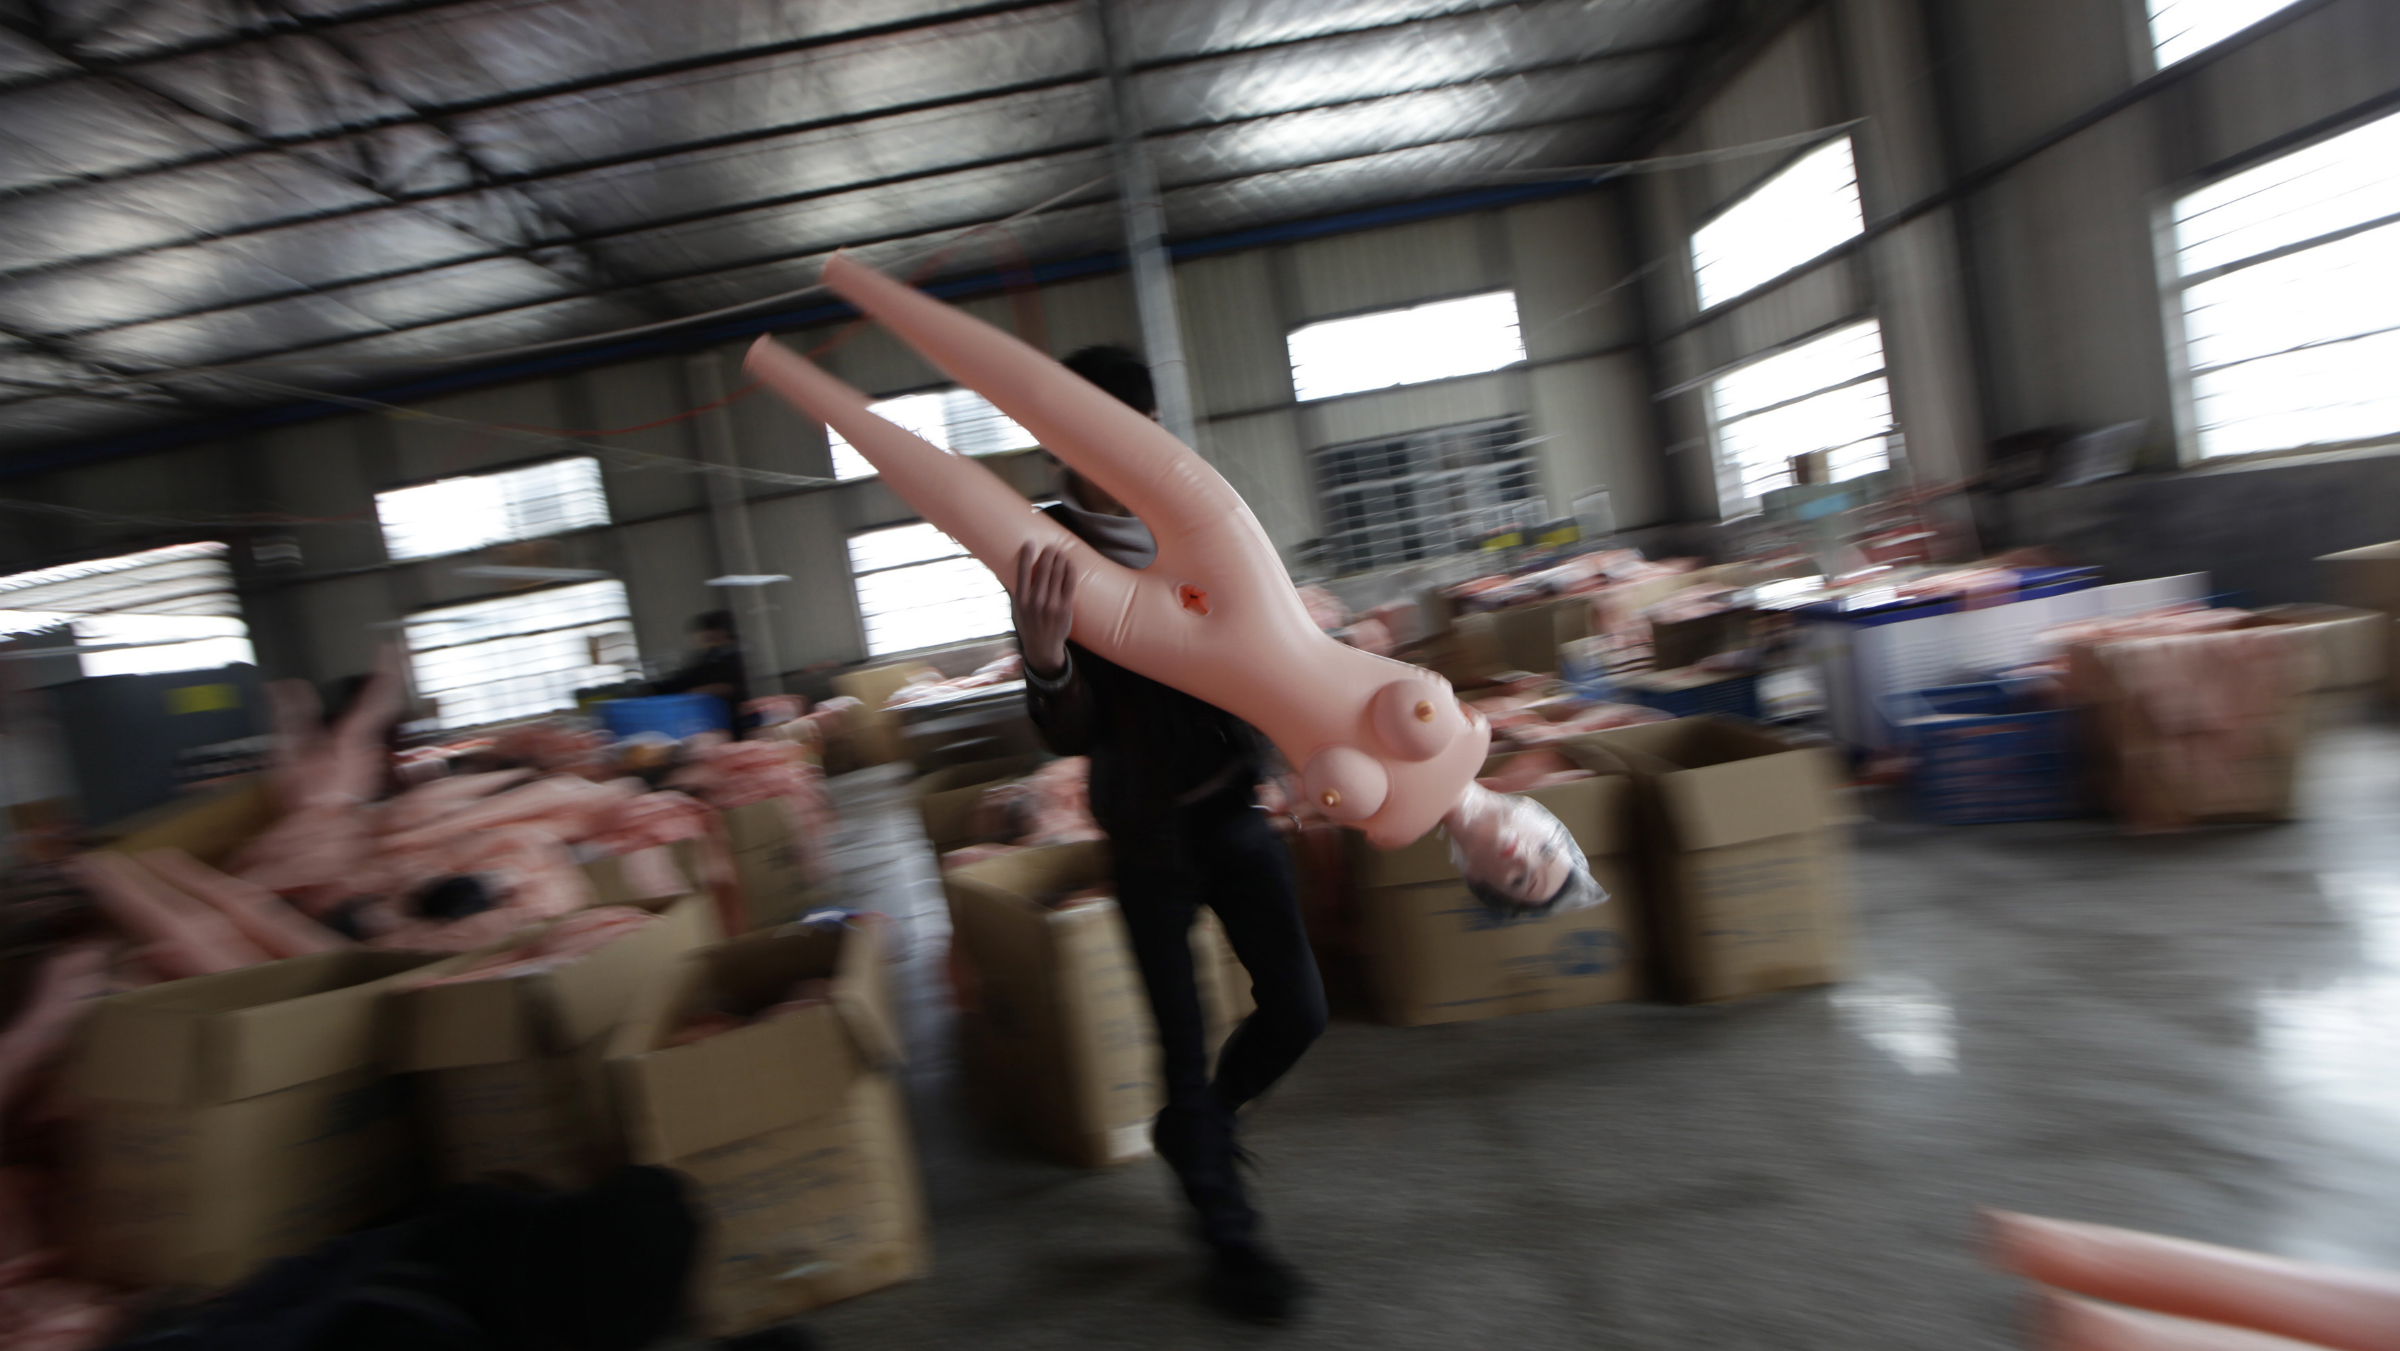 A worker moves an inflatable sex doll at Ningbo Yamei plastic toy factory, on the outskirts of Fenghua, Zhejiang province, February 13, 2012. The company started producing sex dolls three years ago, and now owns a total of 13 types of dolls at the average price of 100 RMB (16 USD). More than 50,000 sex dolls were sold last year, about fifteen percent of which were exported to Japan, Korea and Turkey, according to the company. REUTERS/Jason Lee